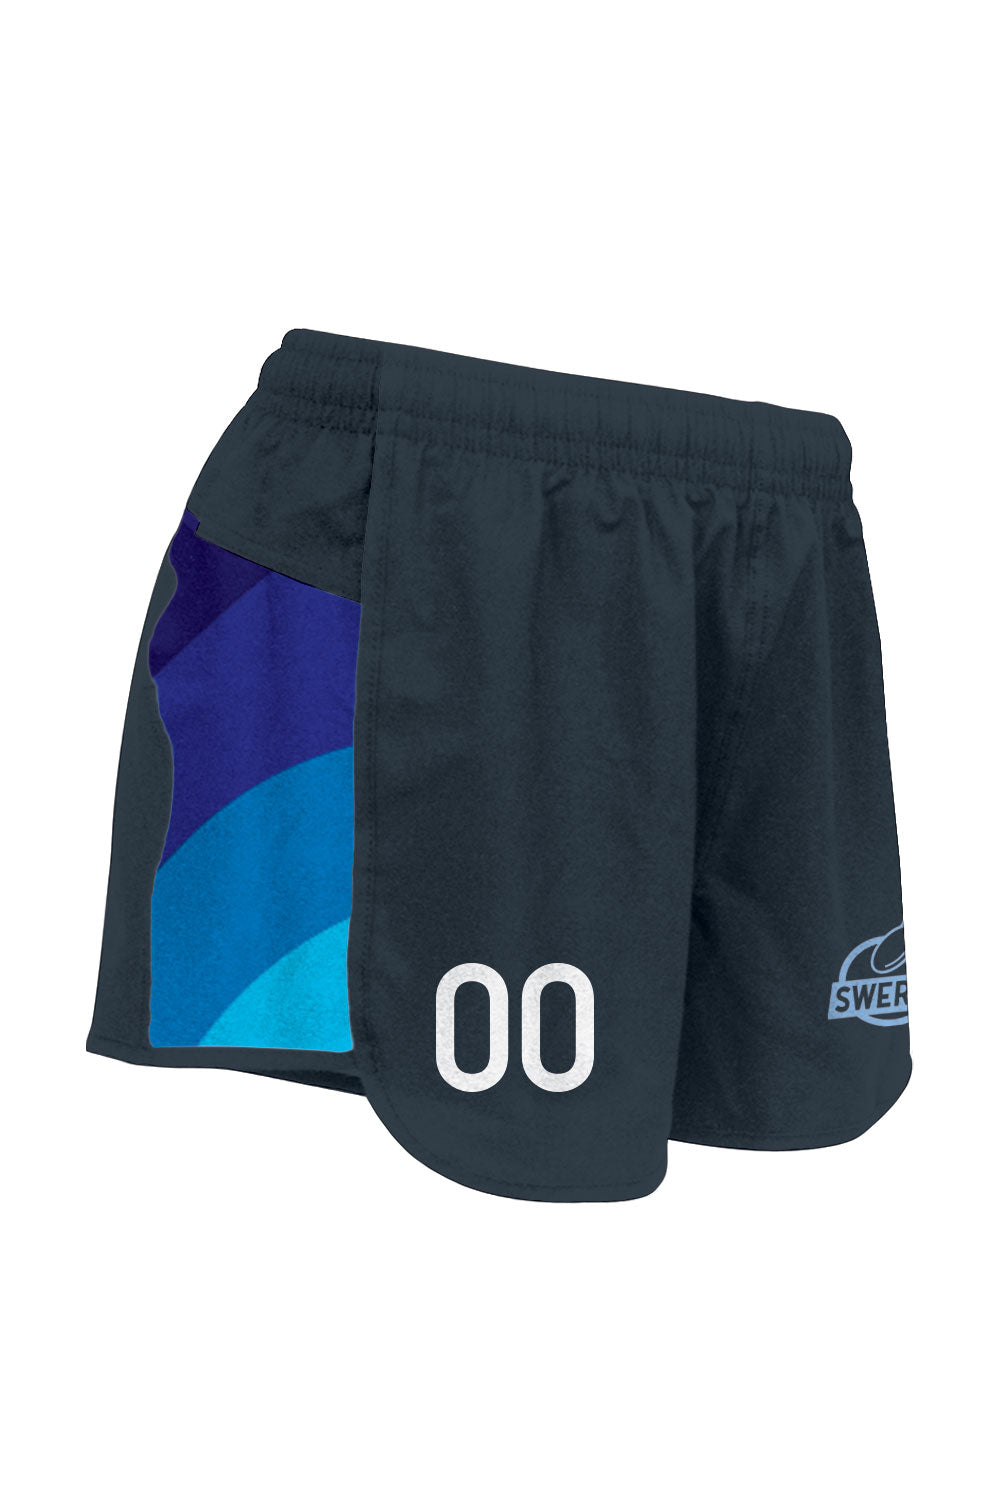 Duke Swerve Full Sub Racer Shorts